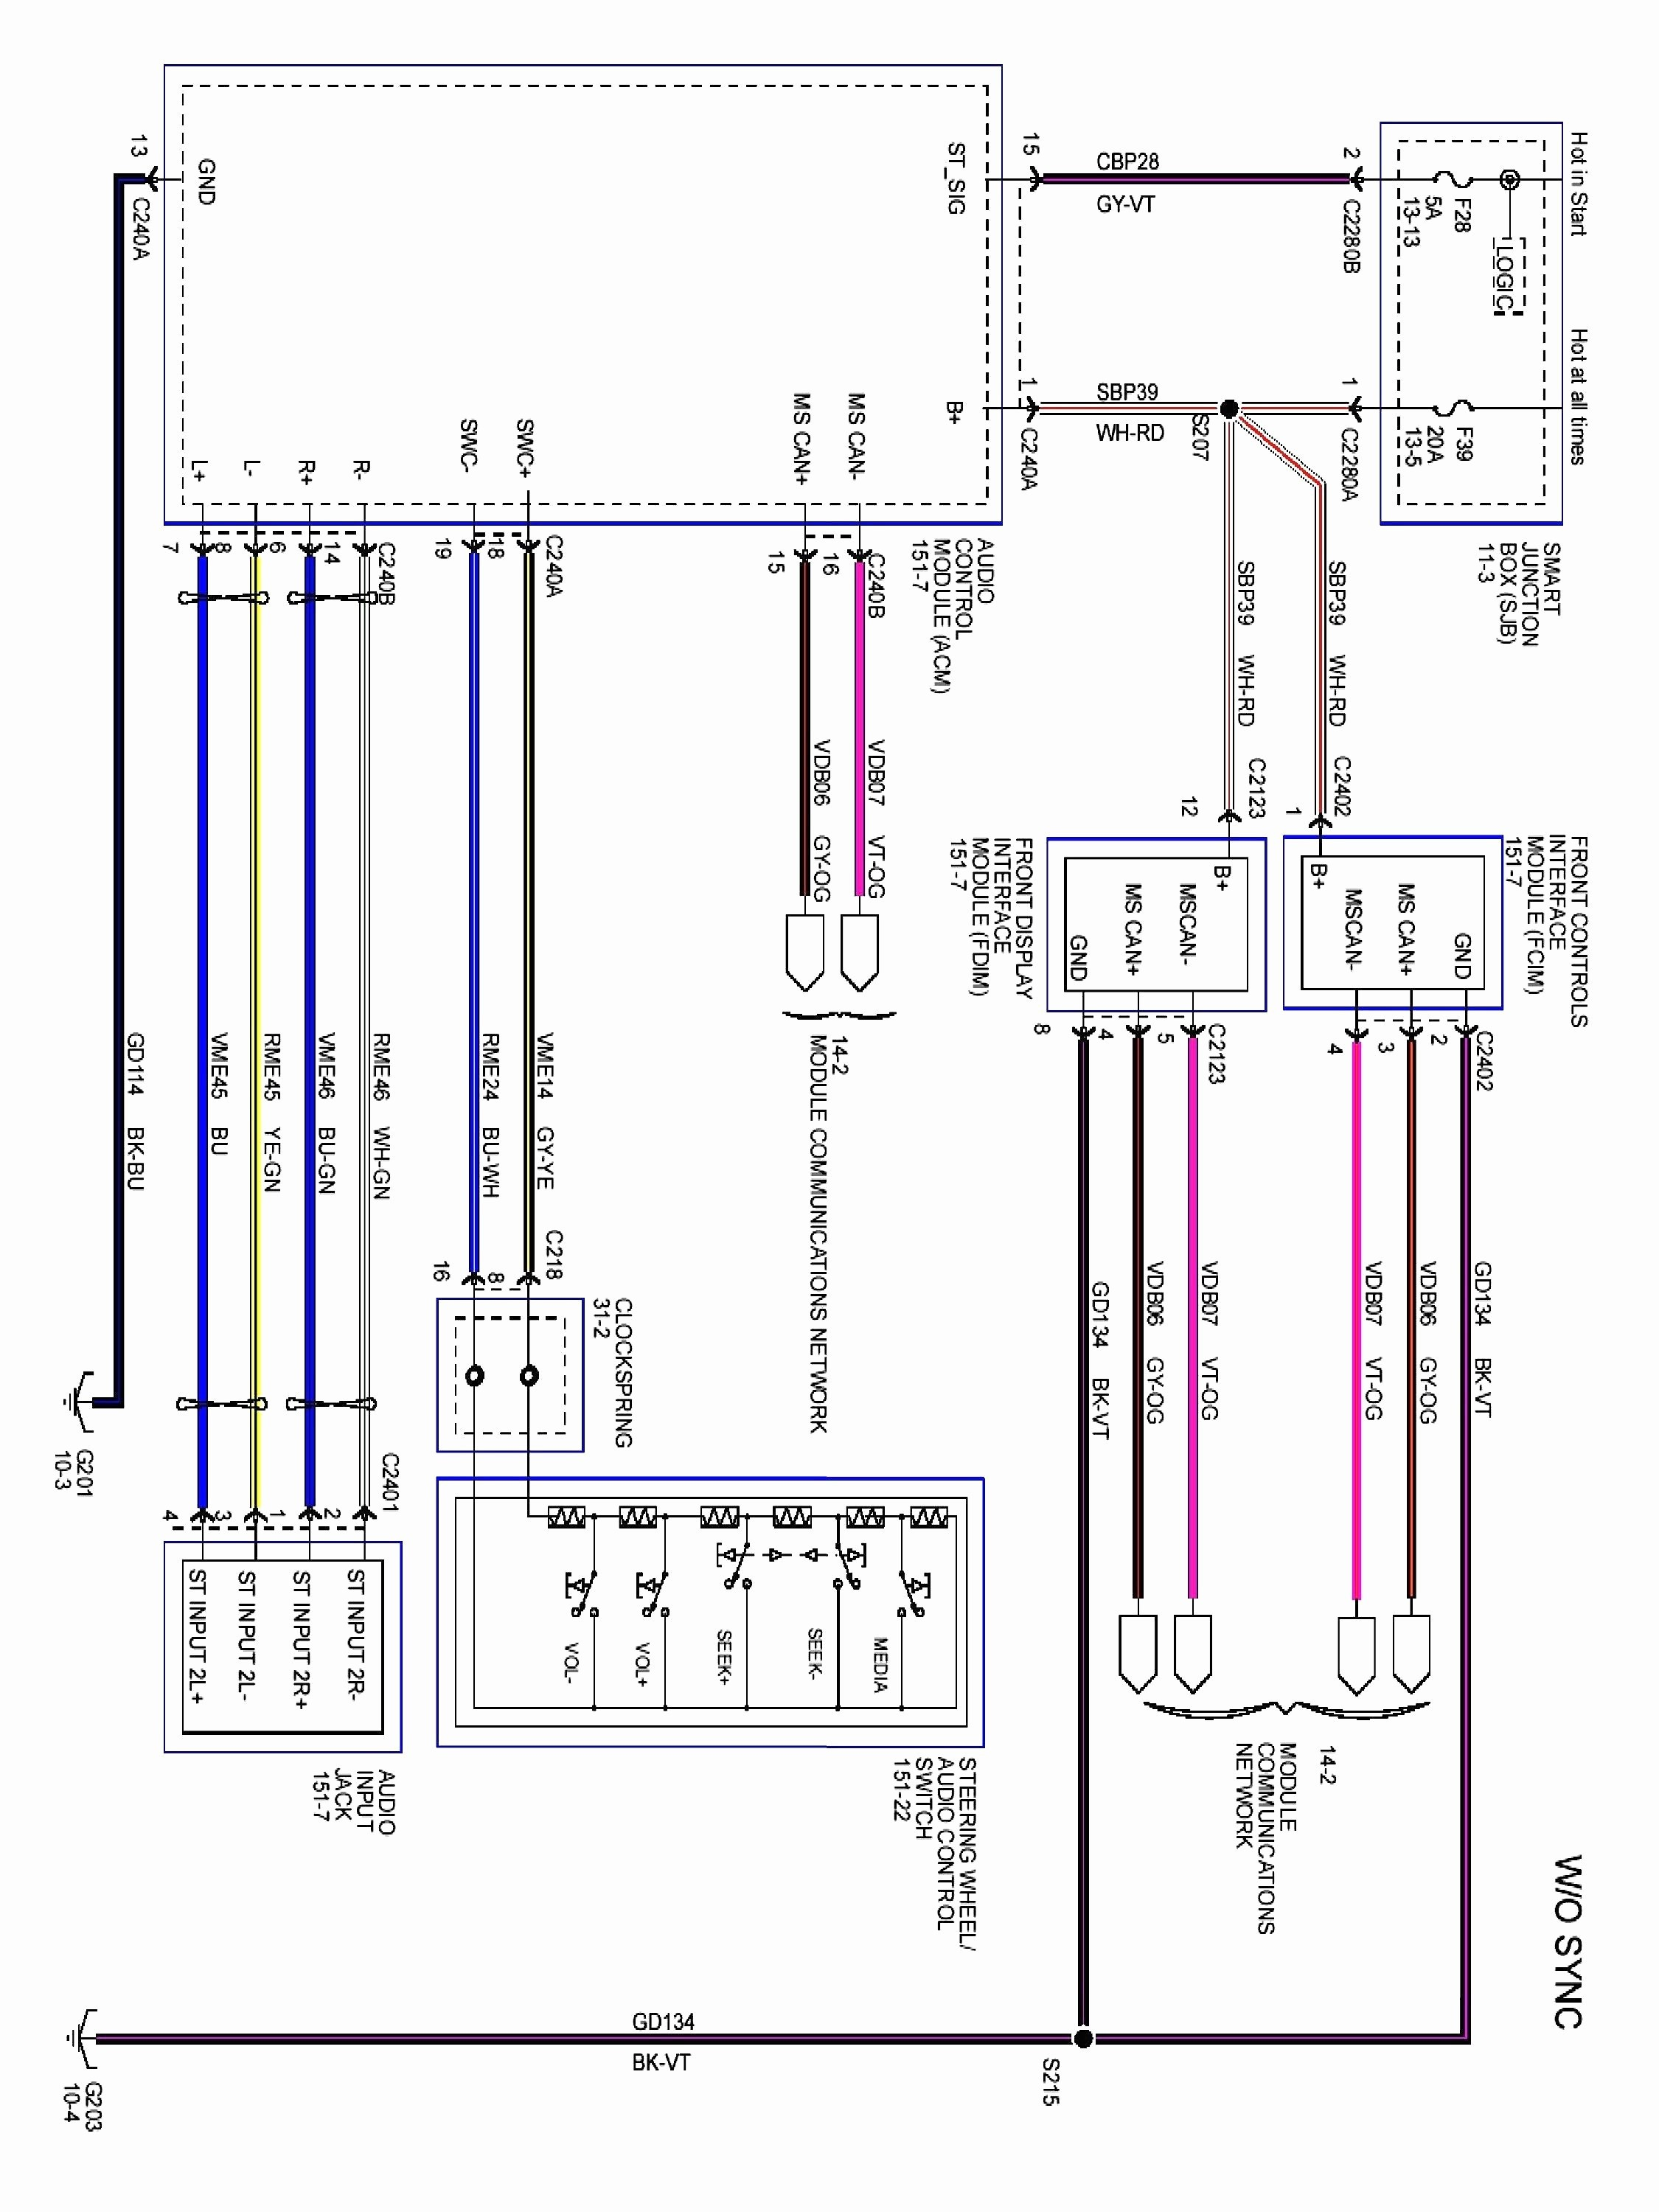 Car sound System Wiring Diagram Wiring Diagram for Amplifier Car Stereo Best Amplifier Wiring Of Car sound System Wiring Diagram